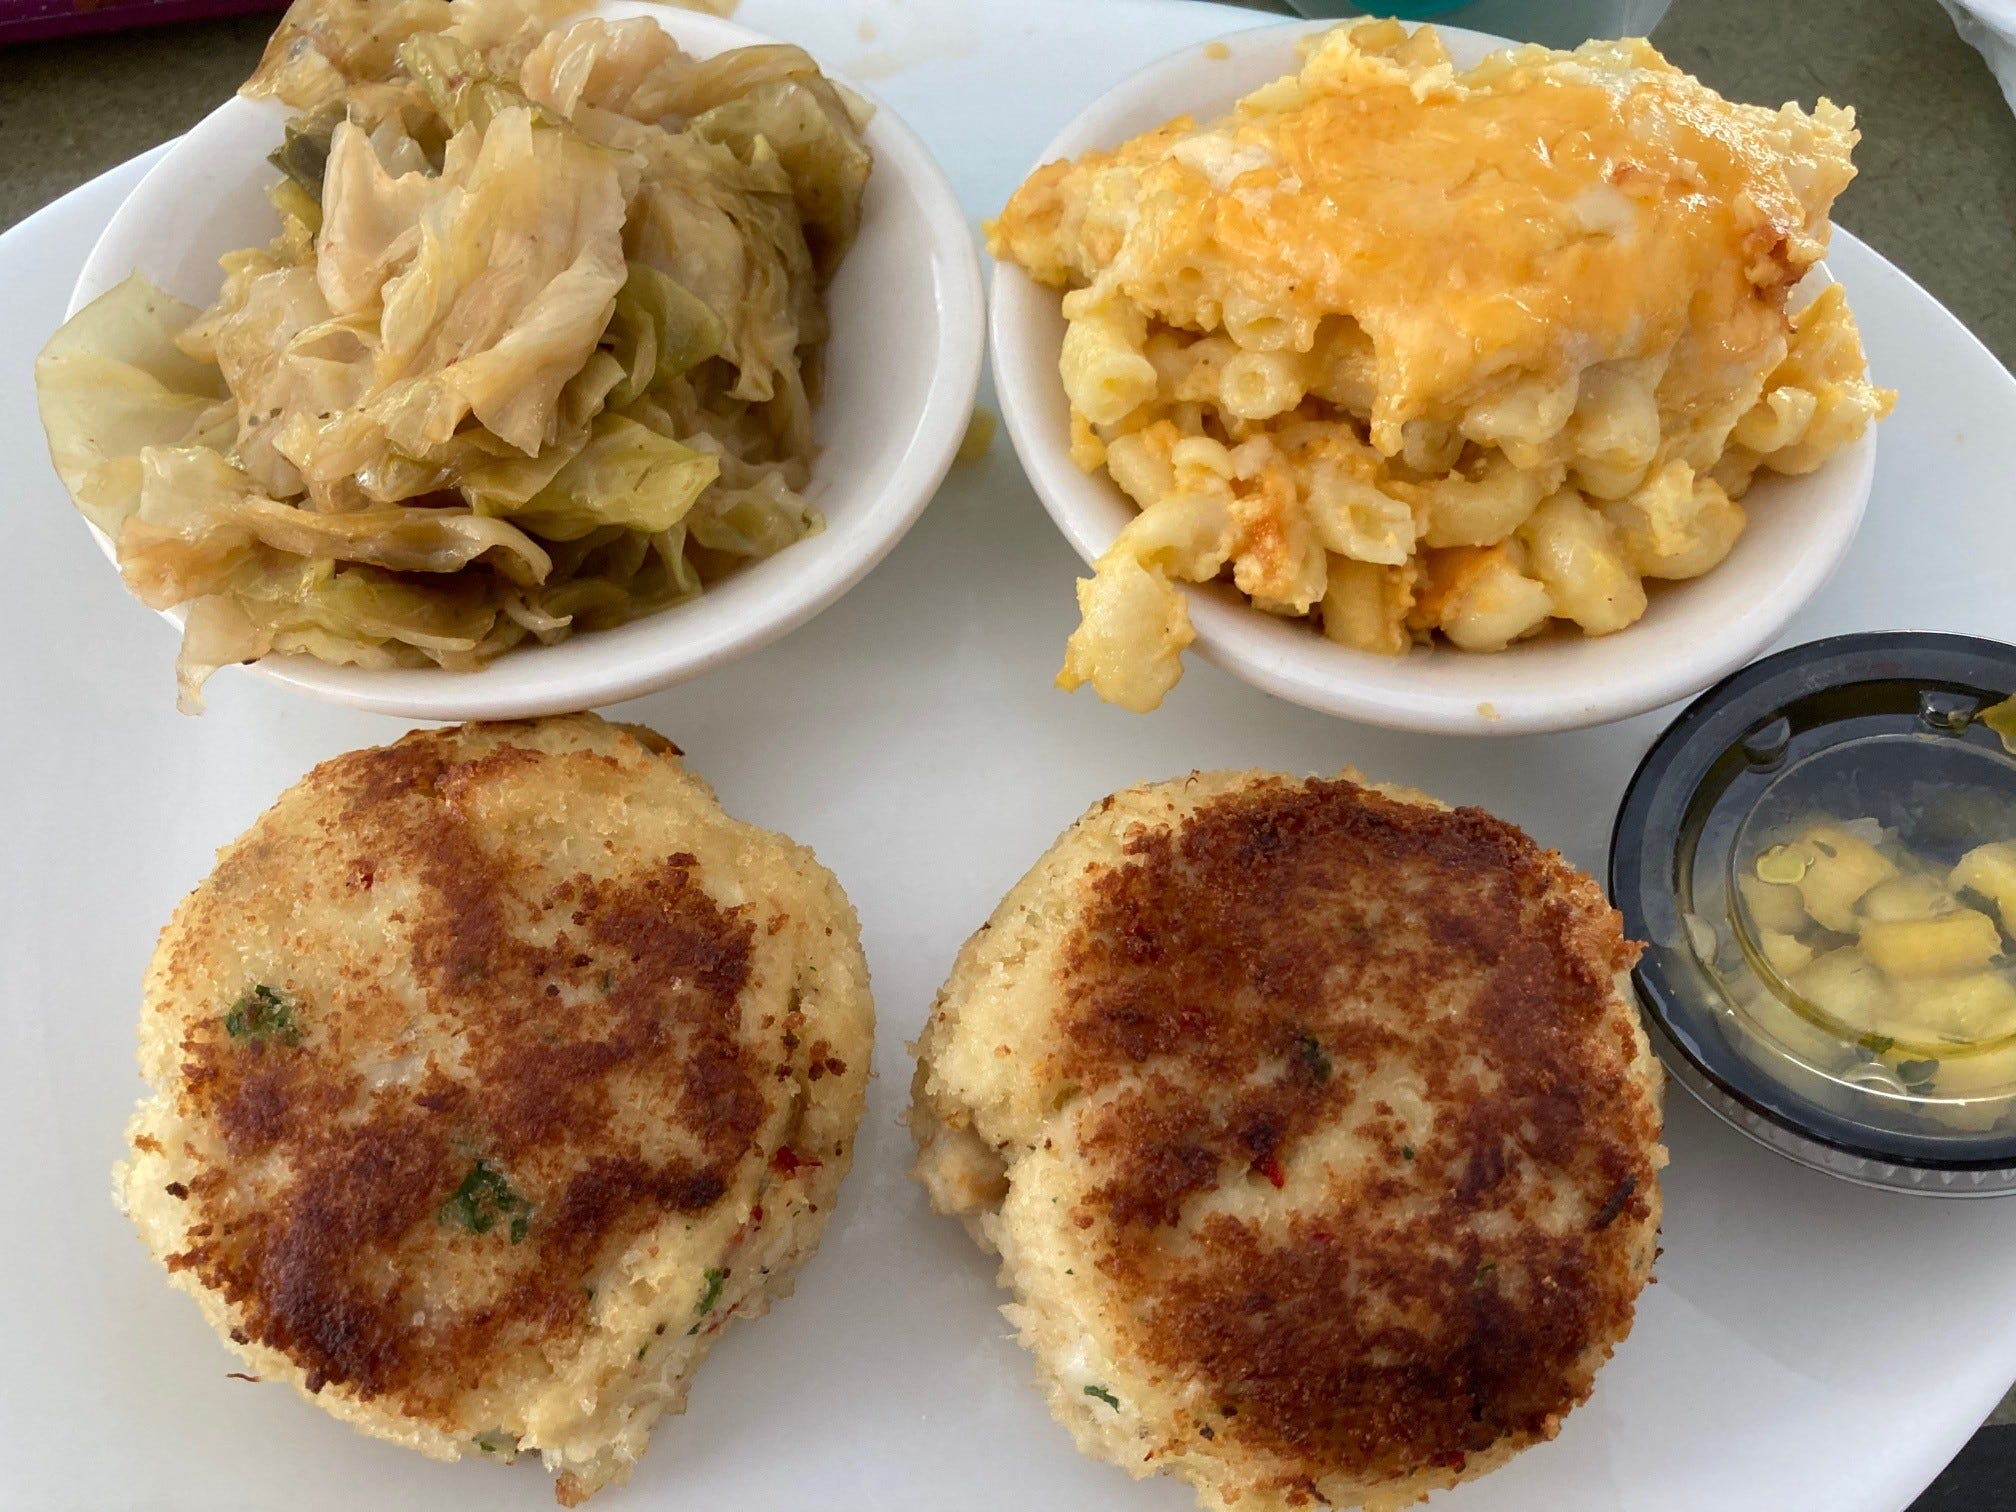 The pan-seared lump crab cakes draw people in at Kelsey's in Atlantic City.  Shown here with cabbage and macaroni and cheese, two other show stoppers. The supper club brings in national and local music acts as well.